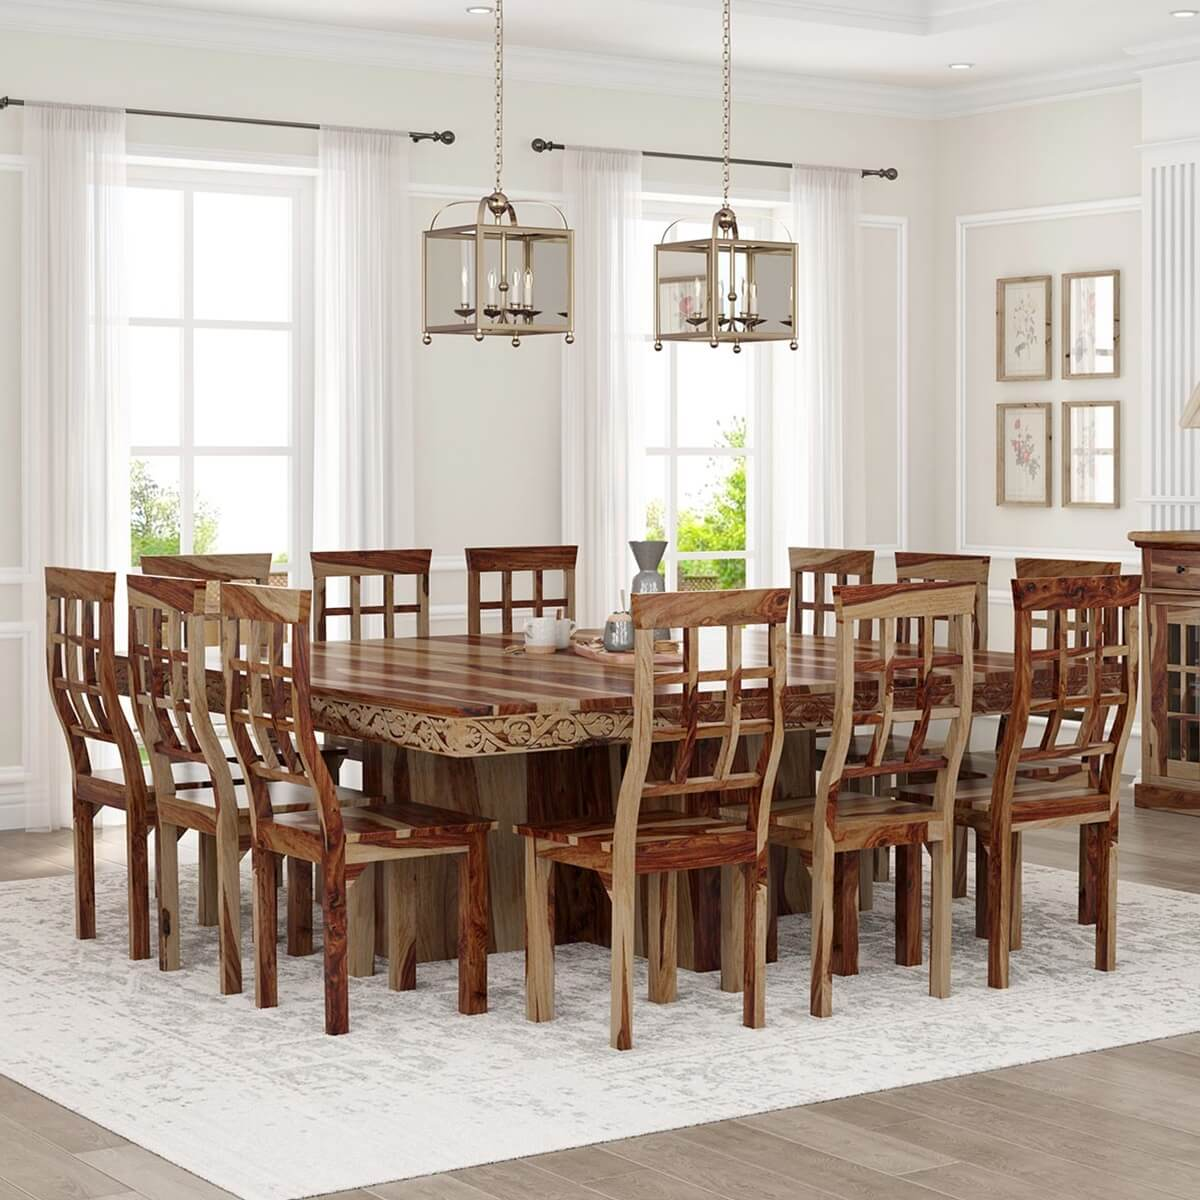 Dallas ranch large square dining room table and chair set for Big table small dining room